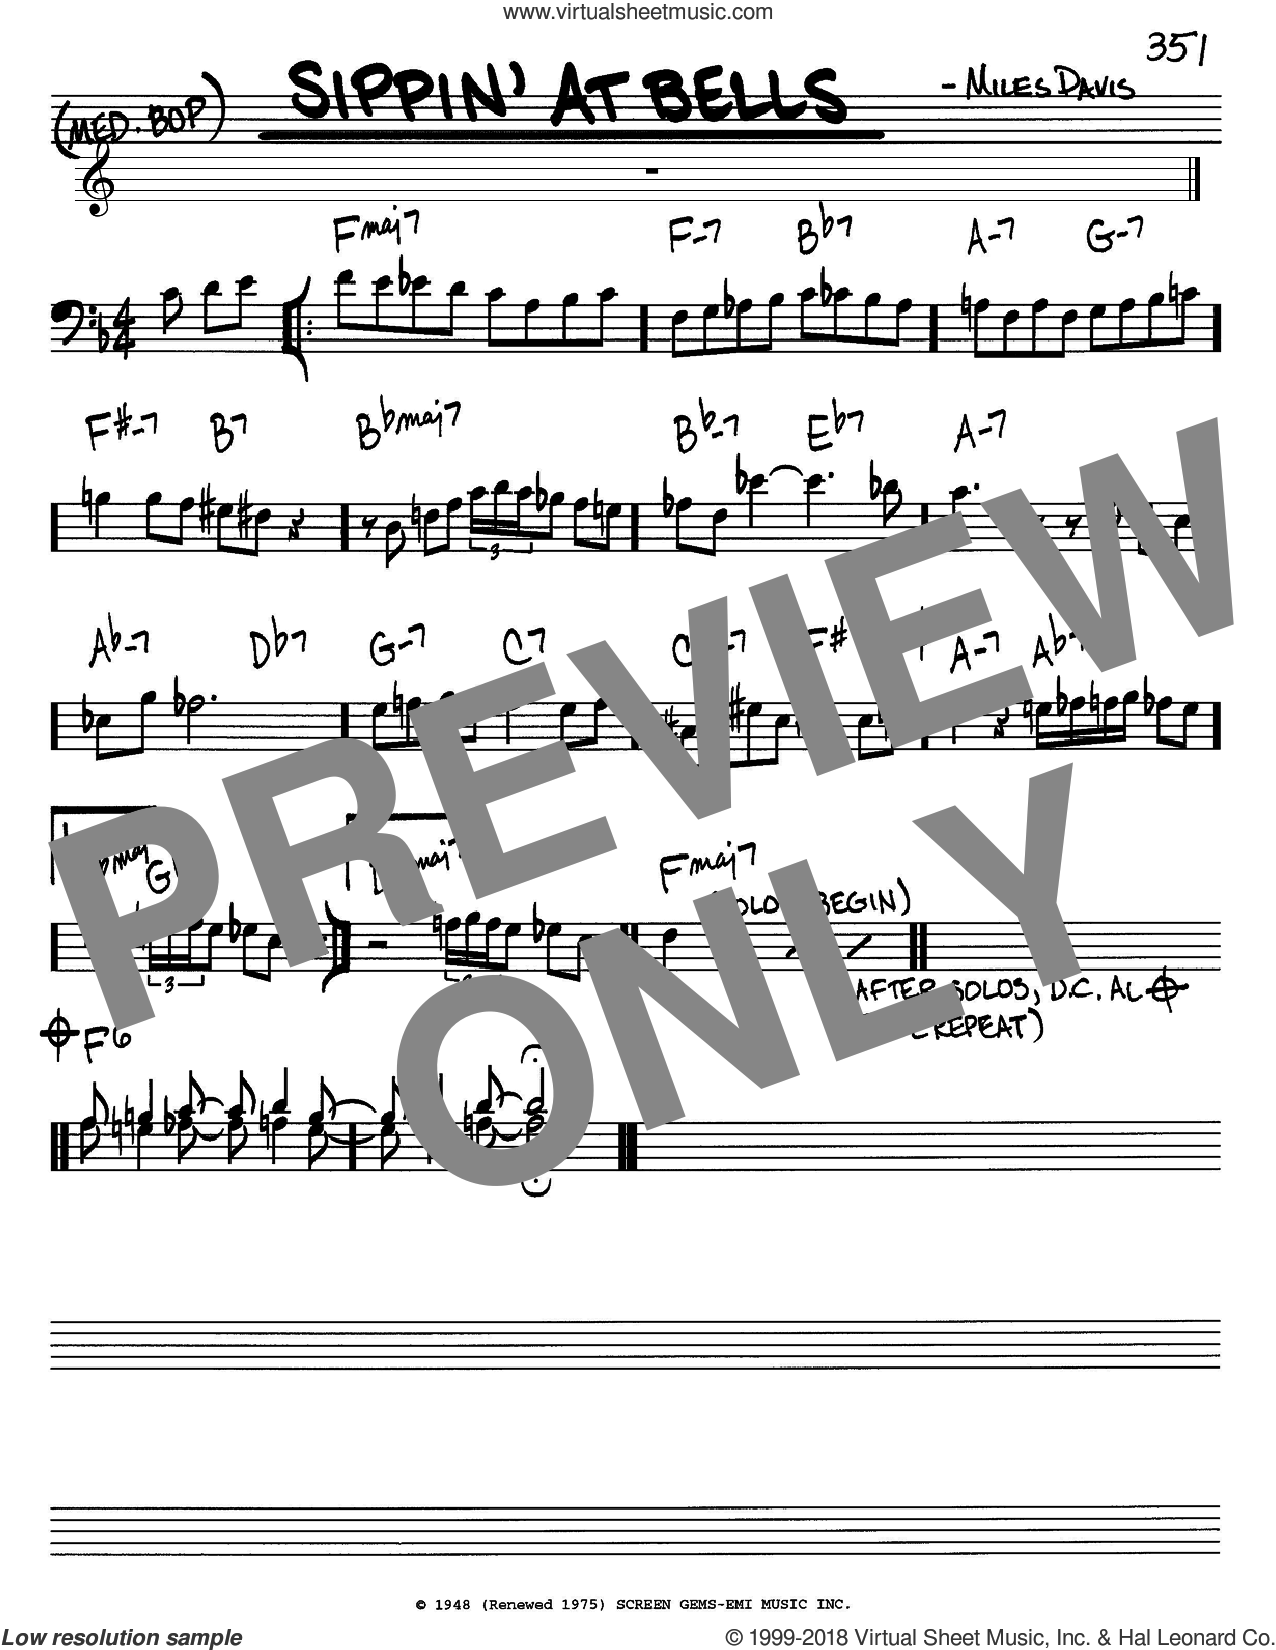 Sippin' At Bells sheet music for voice and other instruments (bass clef) by Miles Davis, intermediate. Score Image Preview.